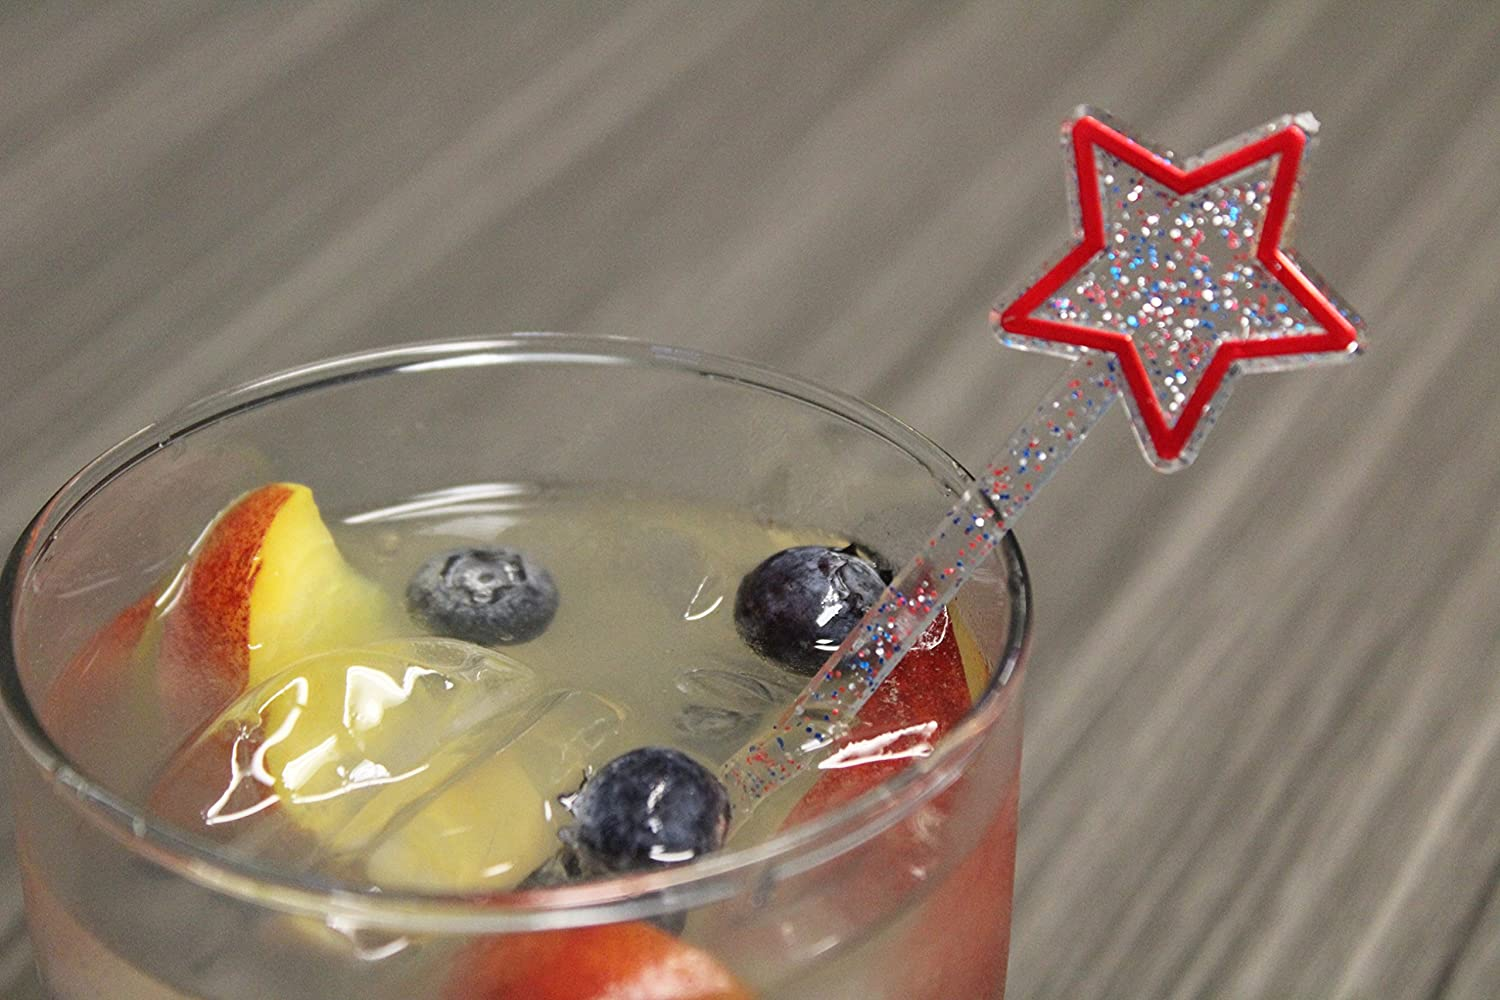 6 Patriotic Star USA Themed Swizzle Sticks Red, White, Blue Royer Corporation D92-6RWB 24 ct Made in USA